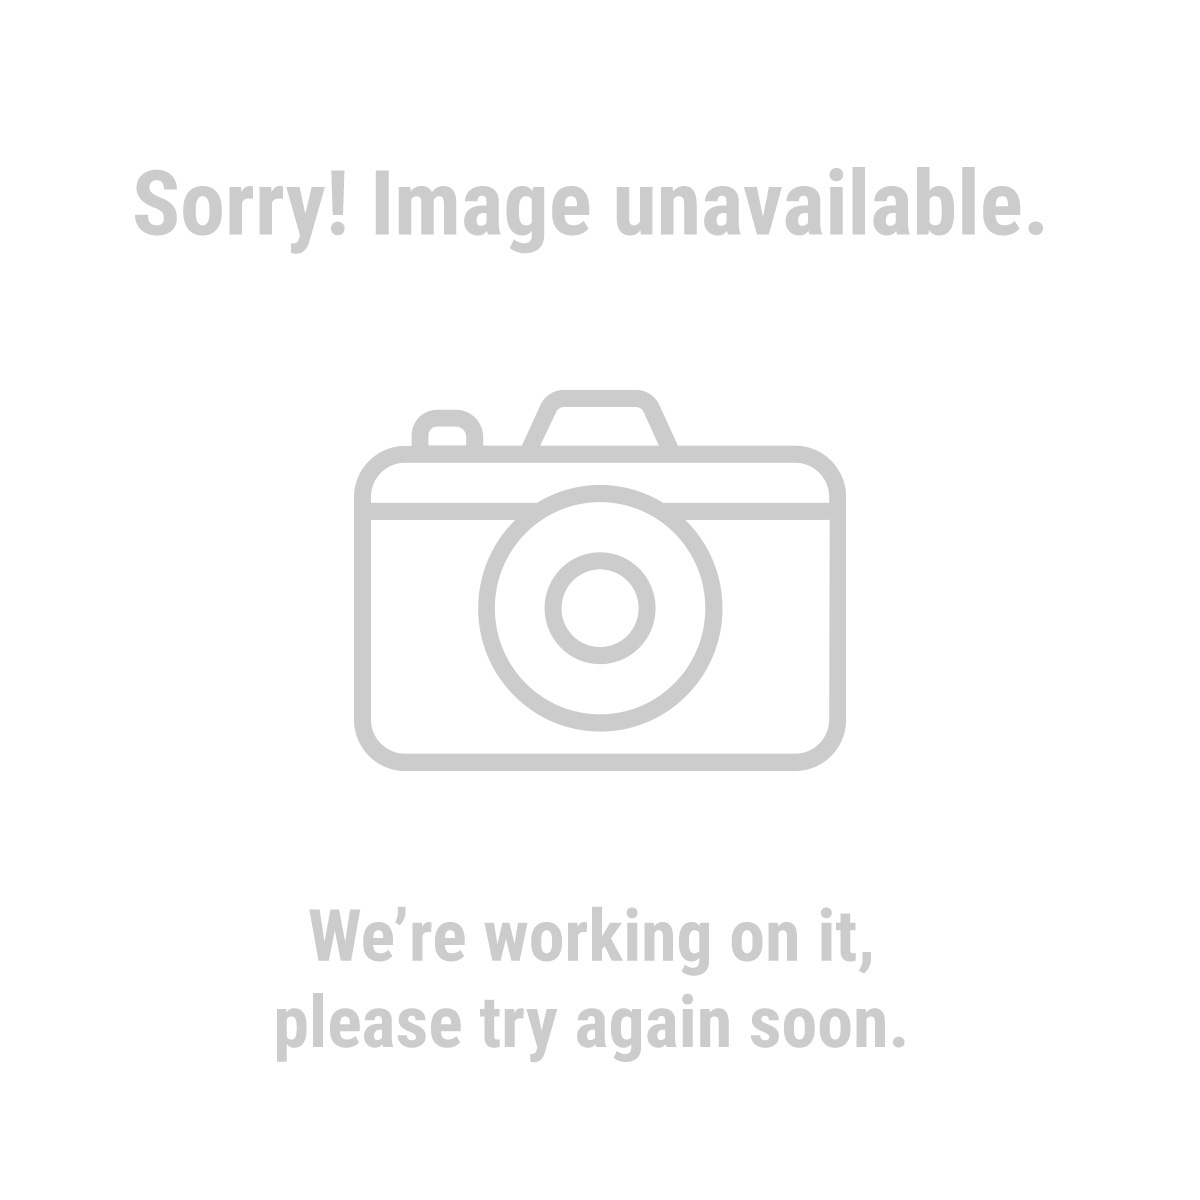 Pittsburgh 43553 4 Piece Tongue and Groove Joint Pliers Set